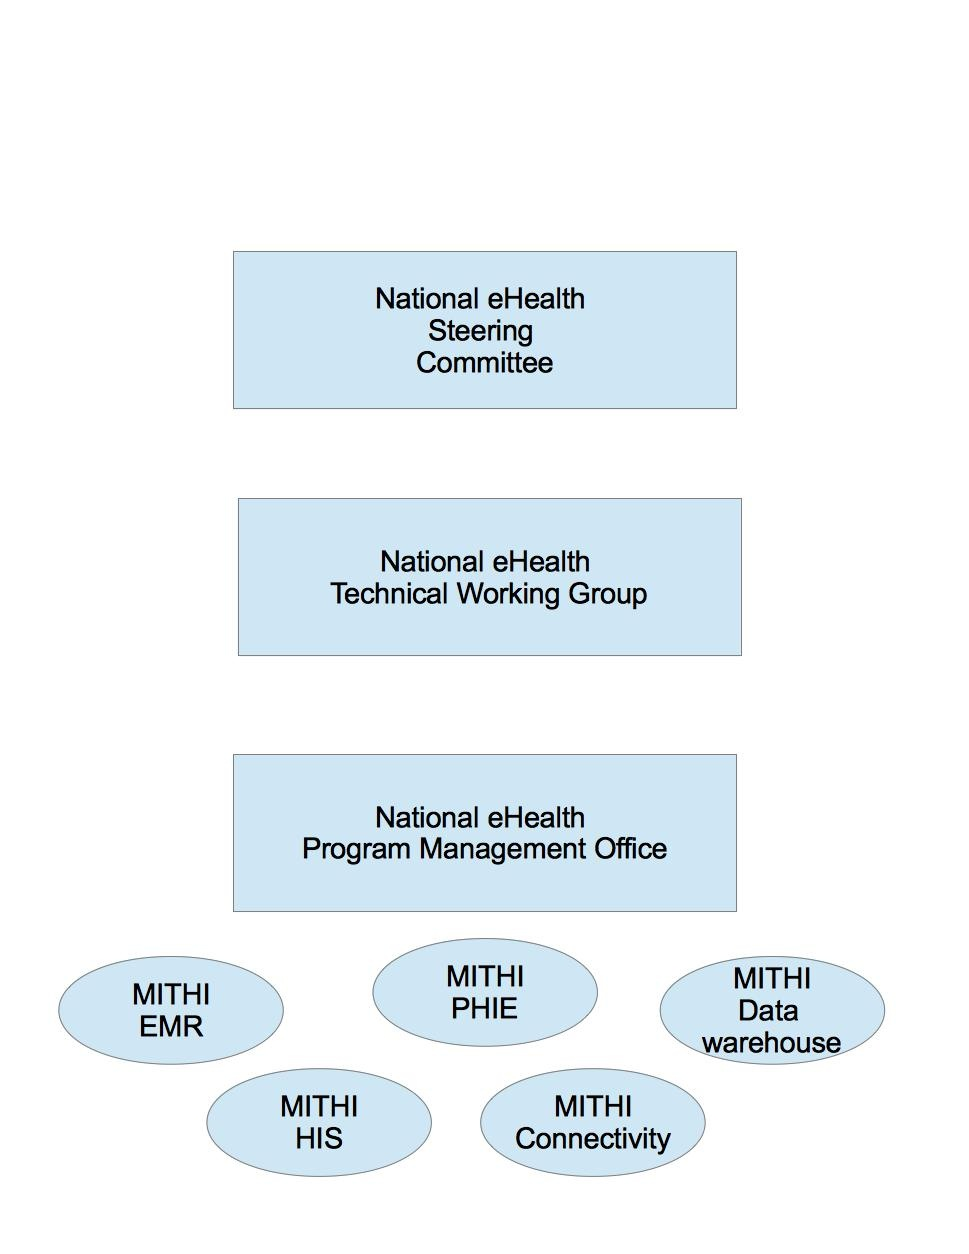 National eHealth Organizational Structure - Projects - OpenHIE Wiki